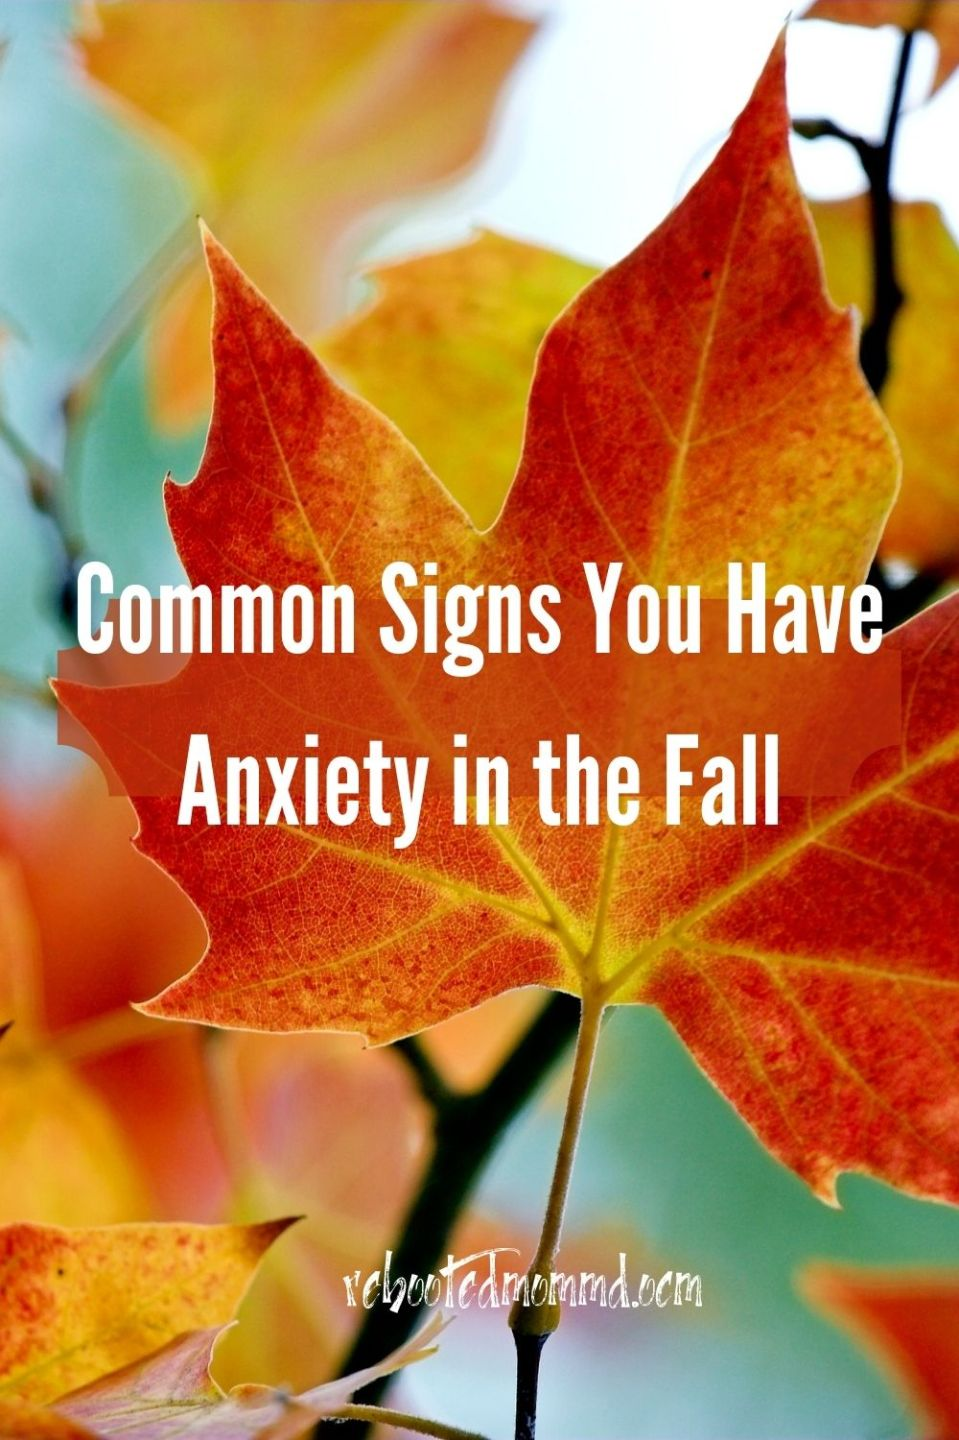 Common Signs You Have Anxiety in the Fall